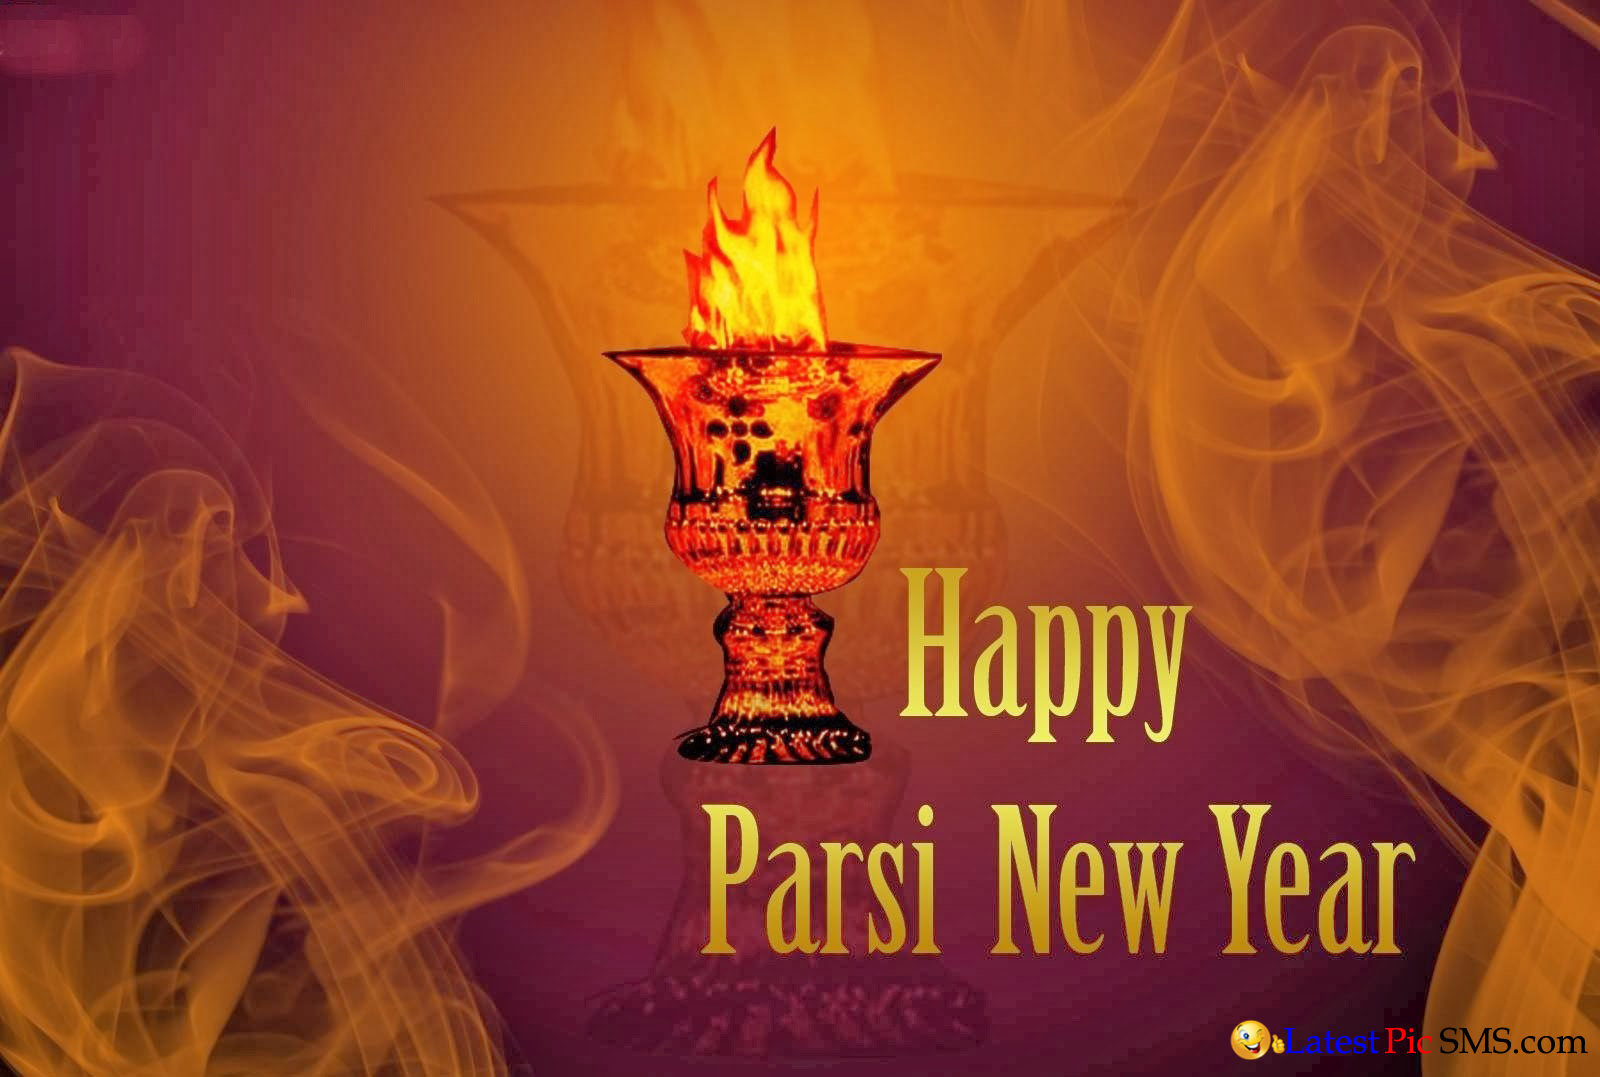 Happy Parsi New Year 2015 - SMS of The Day in English with Pictures for Whatsapp & Facebook